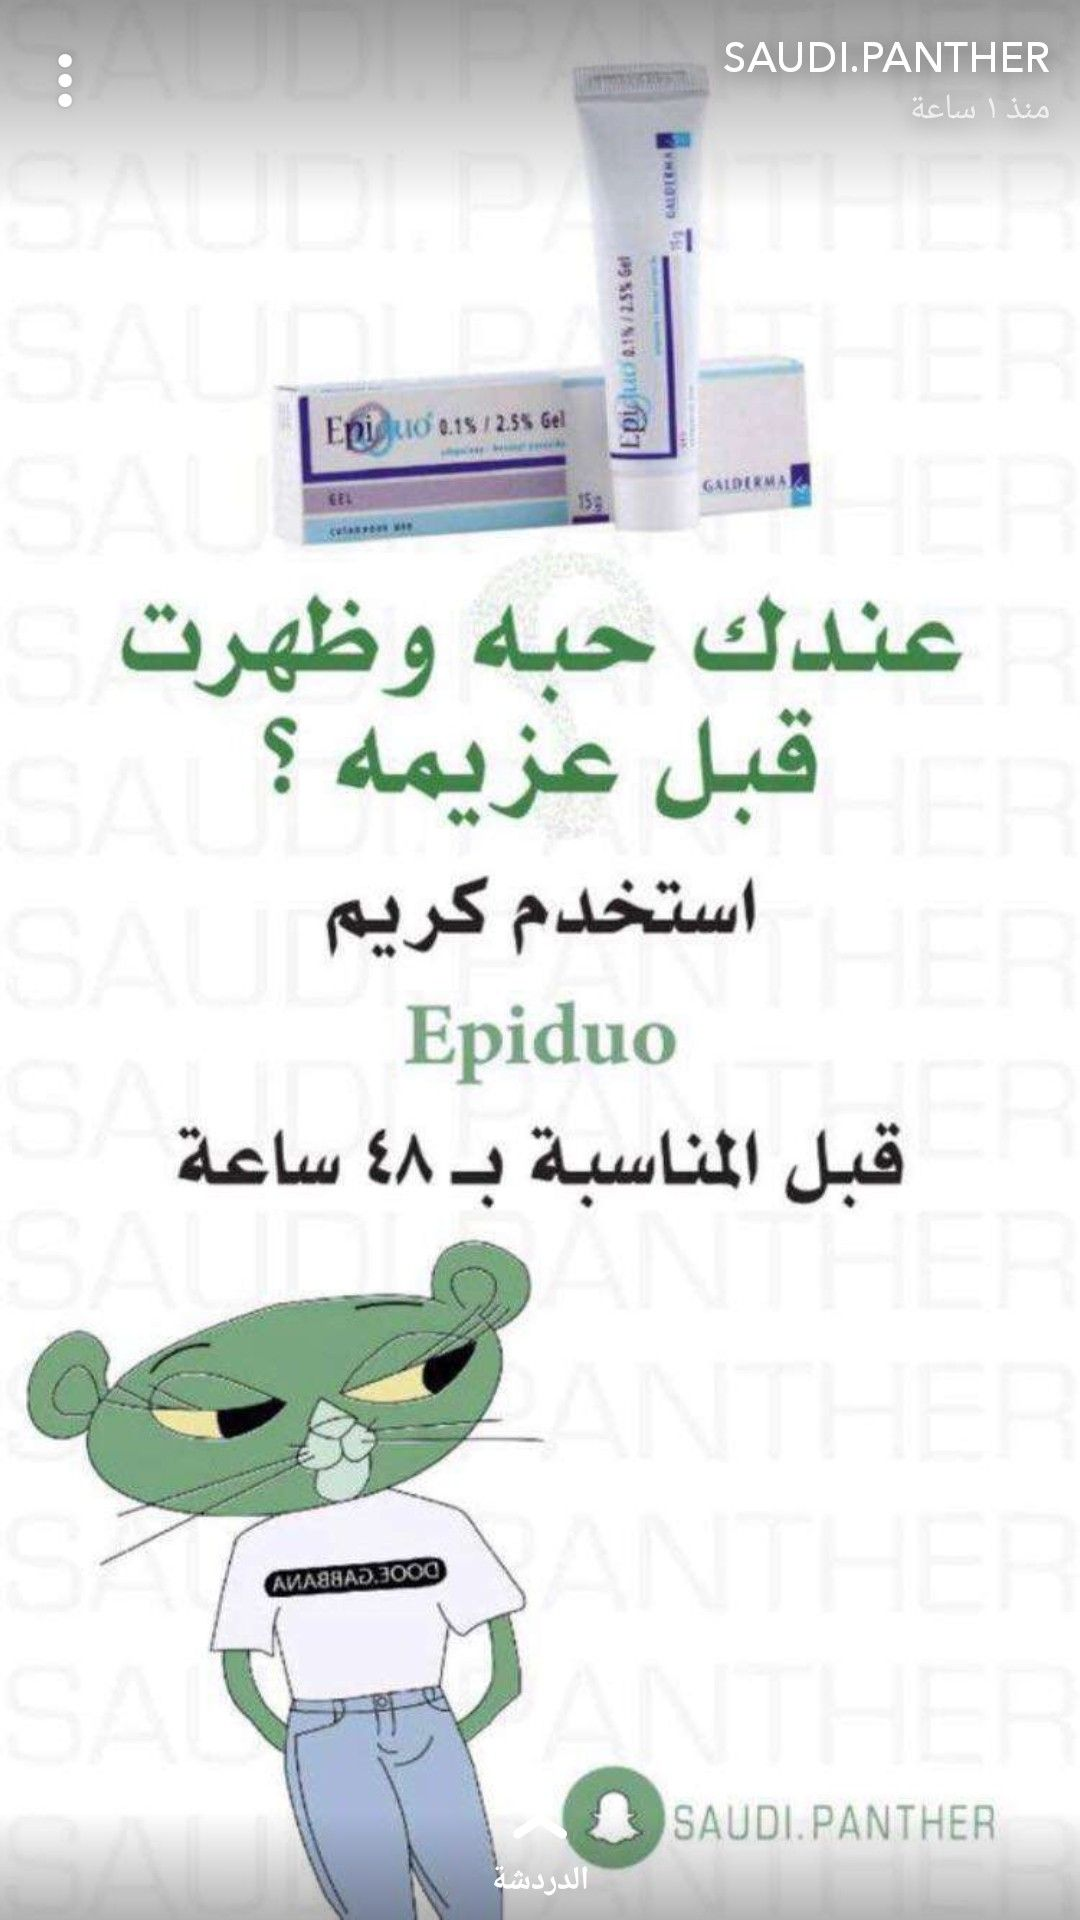 Pin By Ibrahim Ahmed On Saudi Panther Pretty Skin Care Beauty Skin Care Routine Skin Care Mask